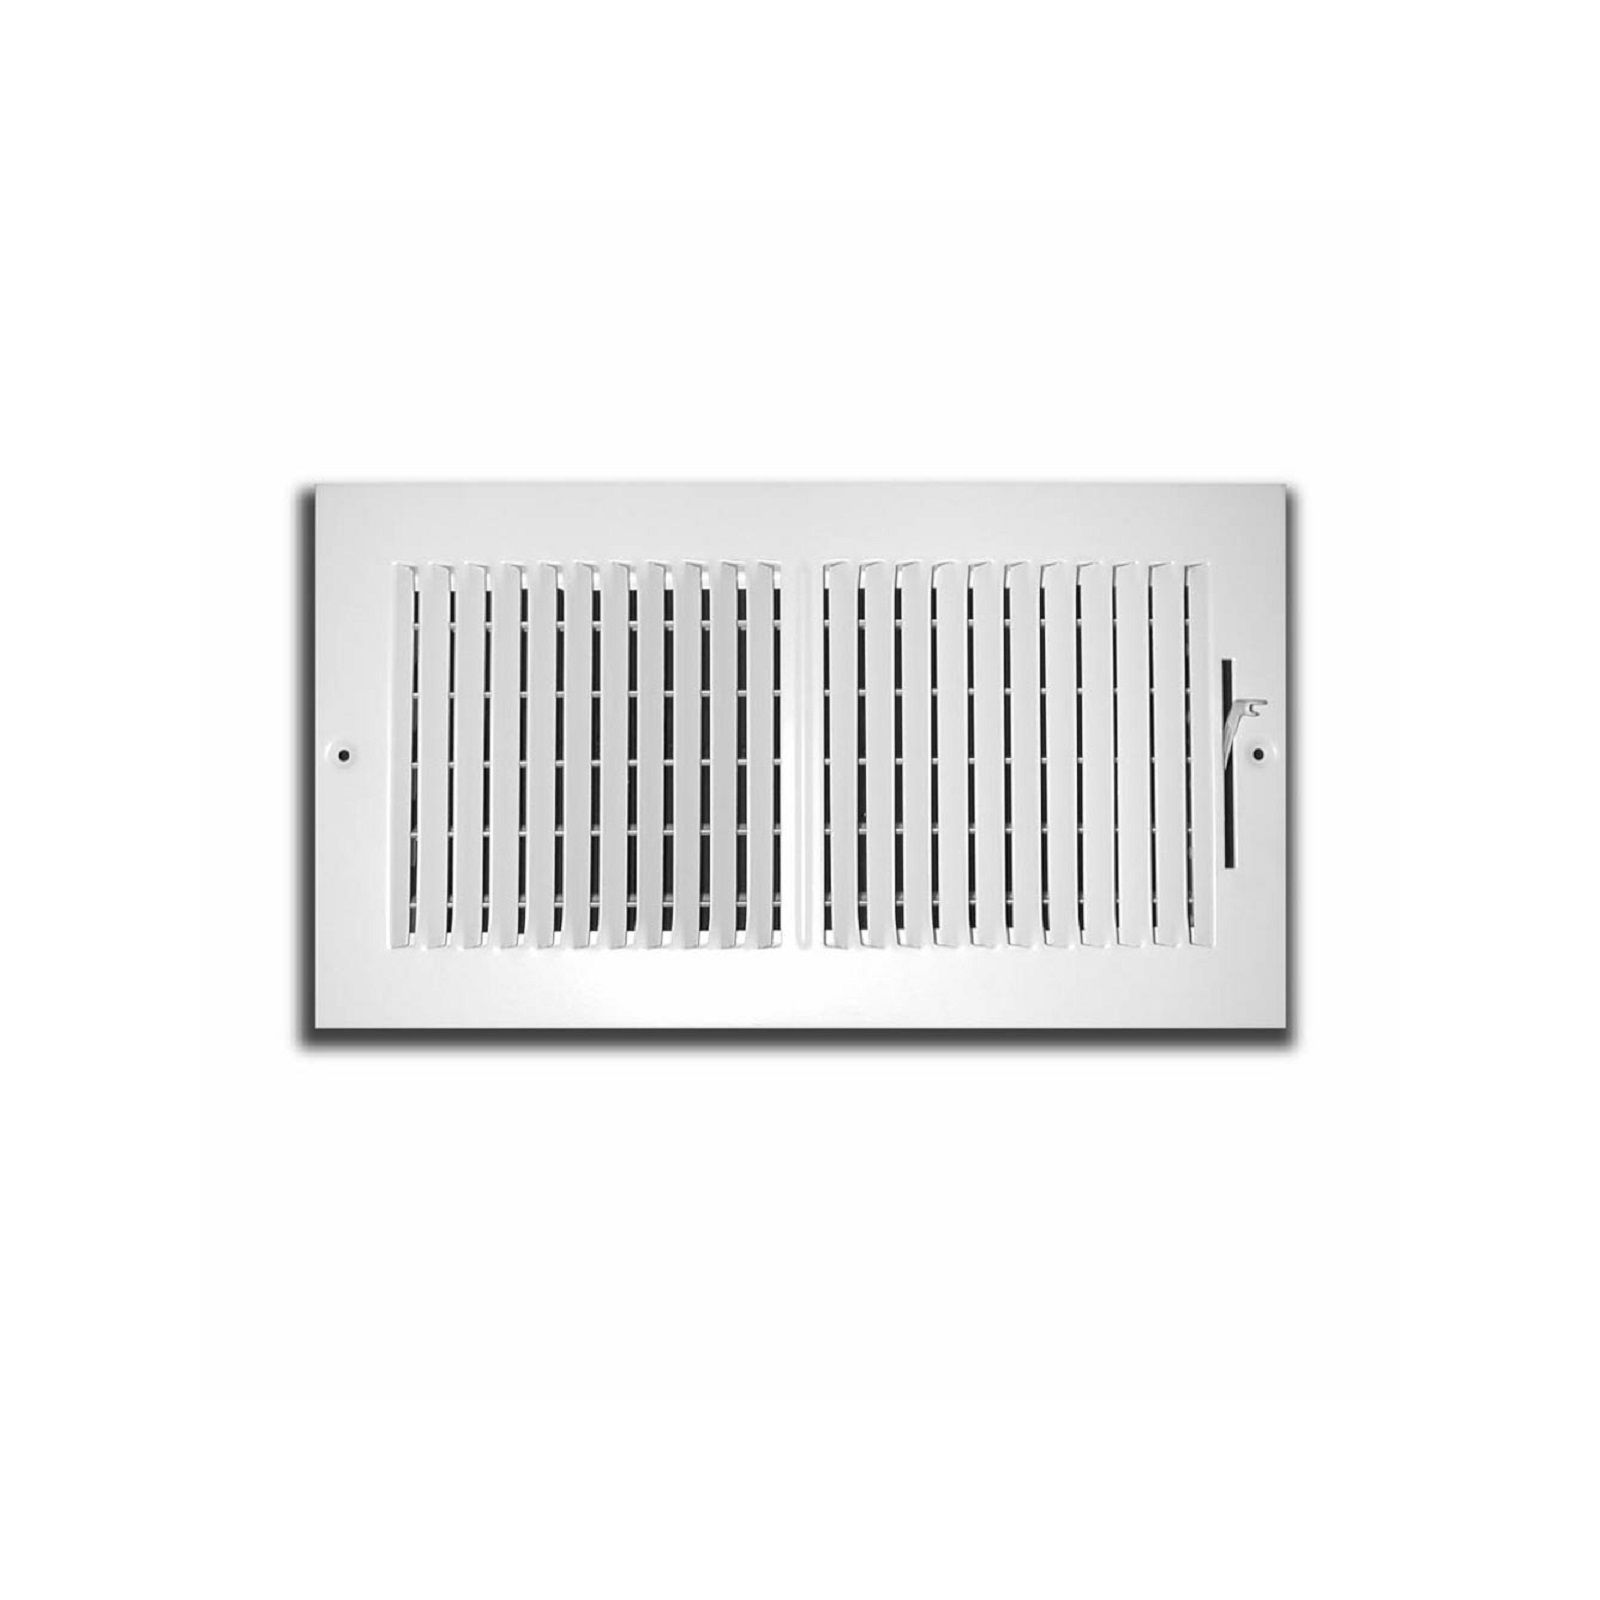 "TRUaire 102M 14X06 - Stamped Steel 2-Way Wall/Ceiling Register, 14"" X 06"""